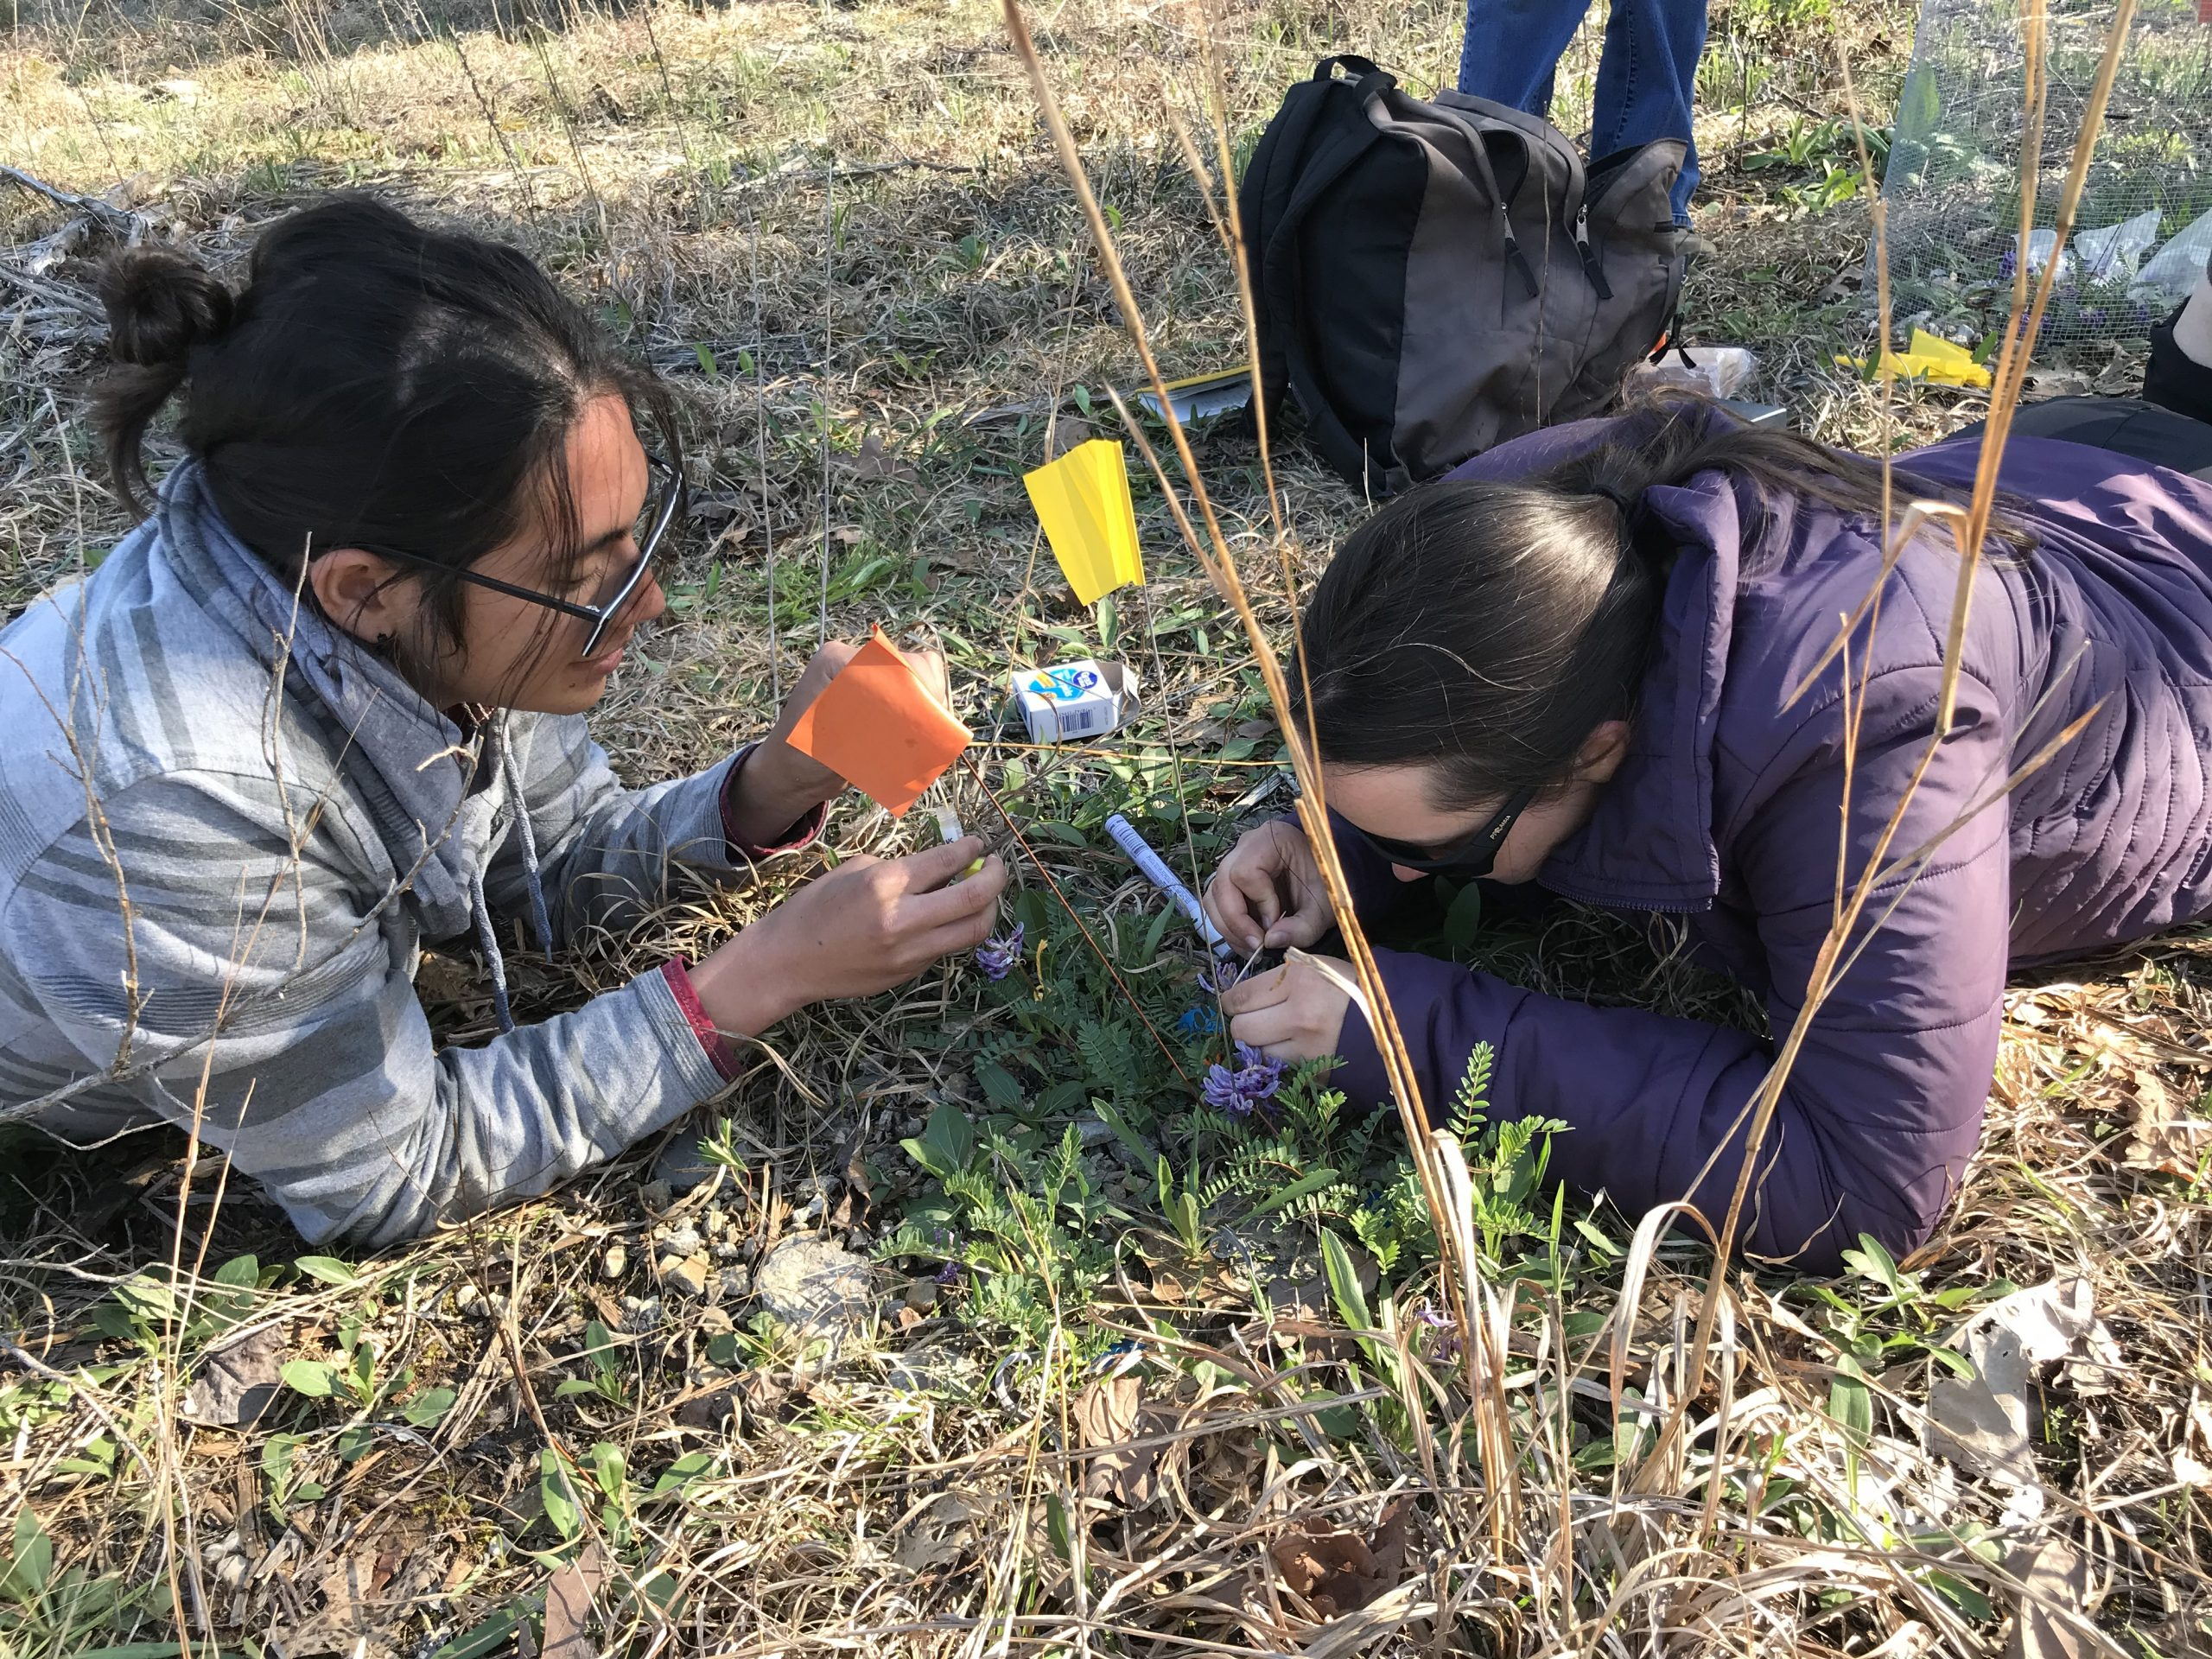 James Lucas and Shannon Skarha applying pollination treatments to reintroduced Pyne's ground-plum plants.